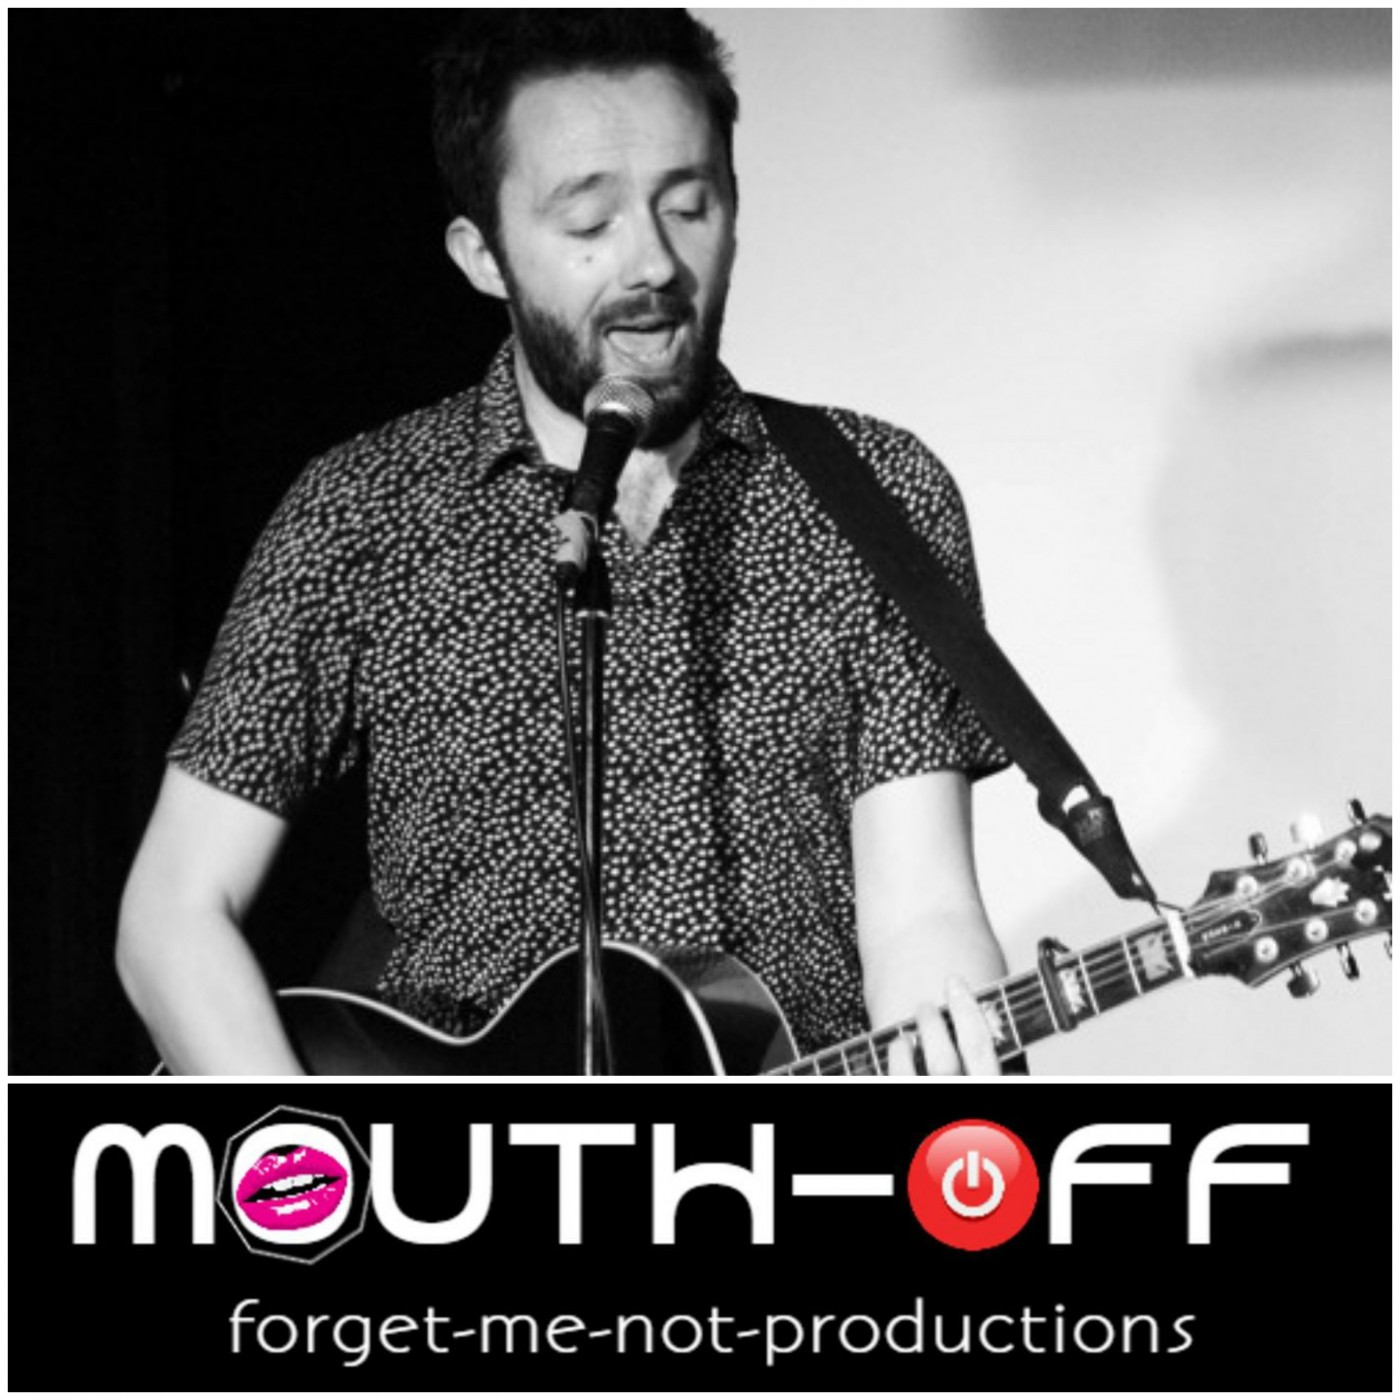 Mouth-Off Episode 10, part 2: Mostly David Ephgrave, partly Paul McCartney